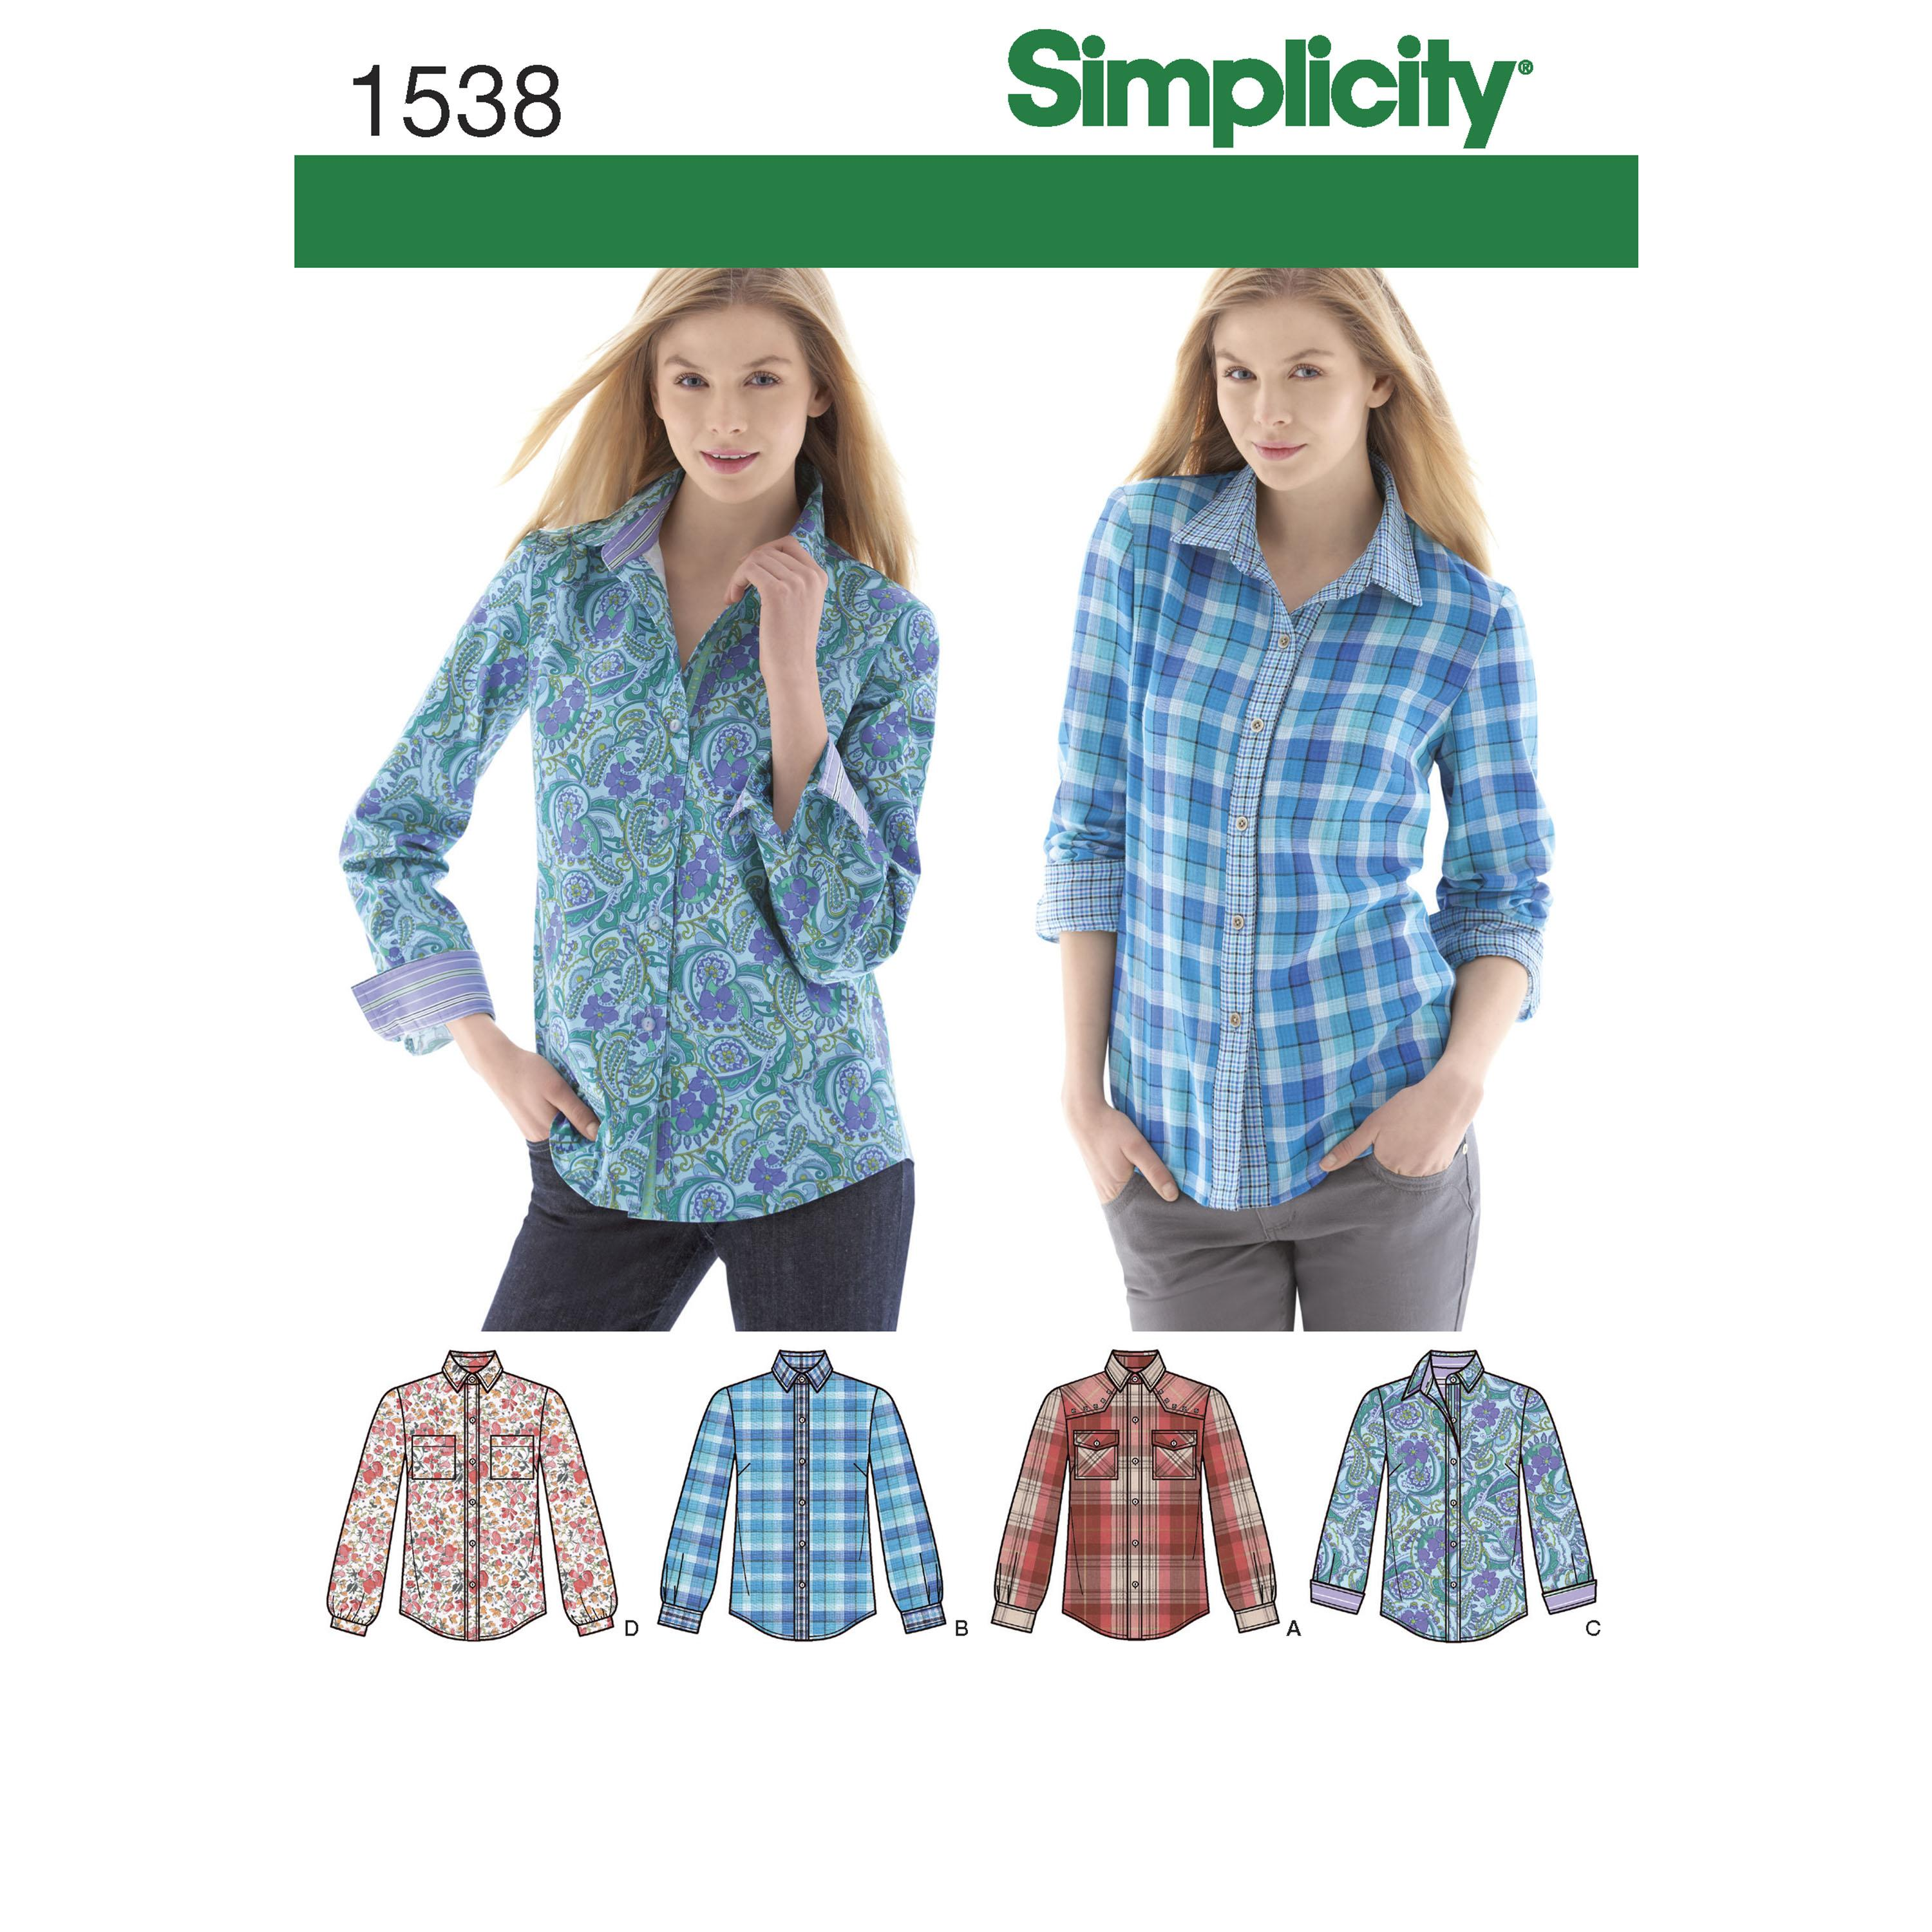 Simplicity S1538 Women's  Button Front Shirt sizes 6 - 22